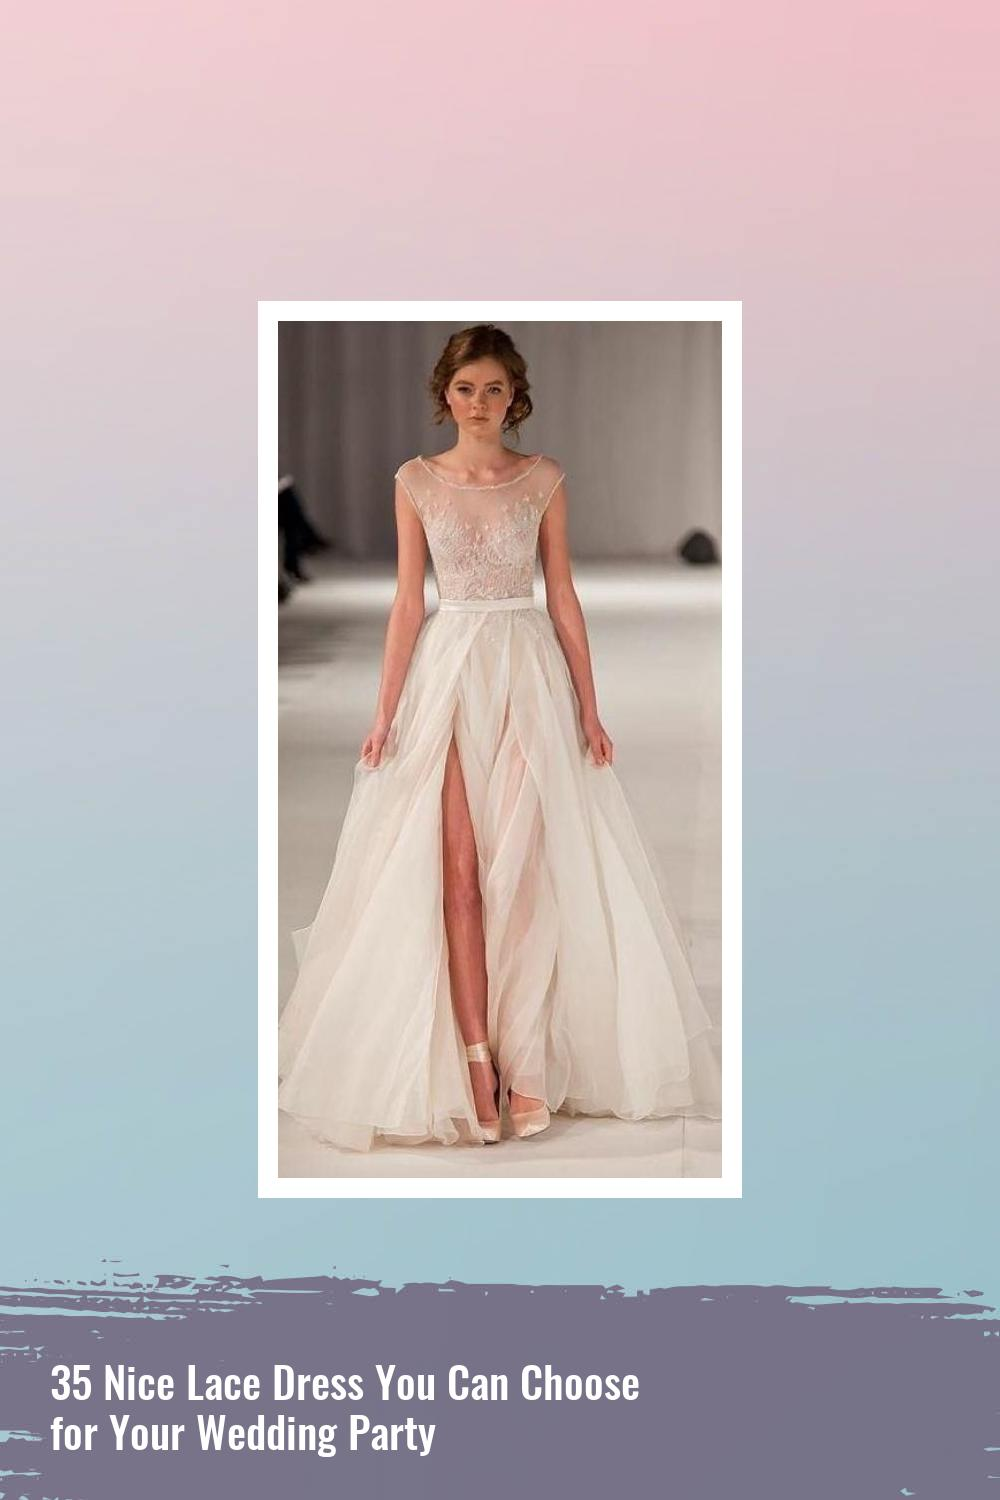 35 Nice Lace Dress You Can Choose for Your Wedding Party 7